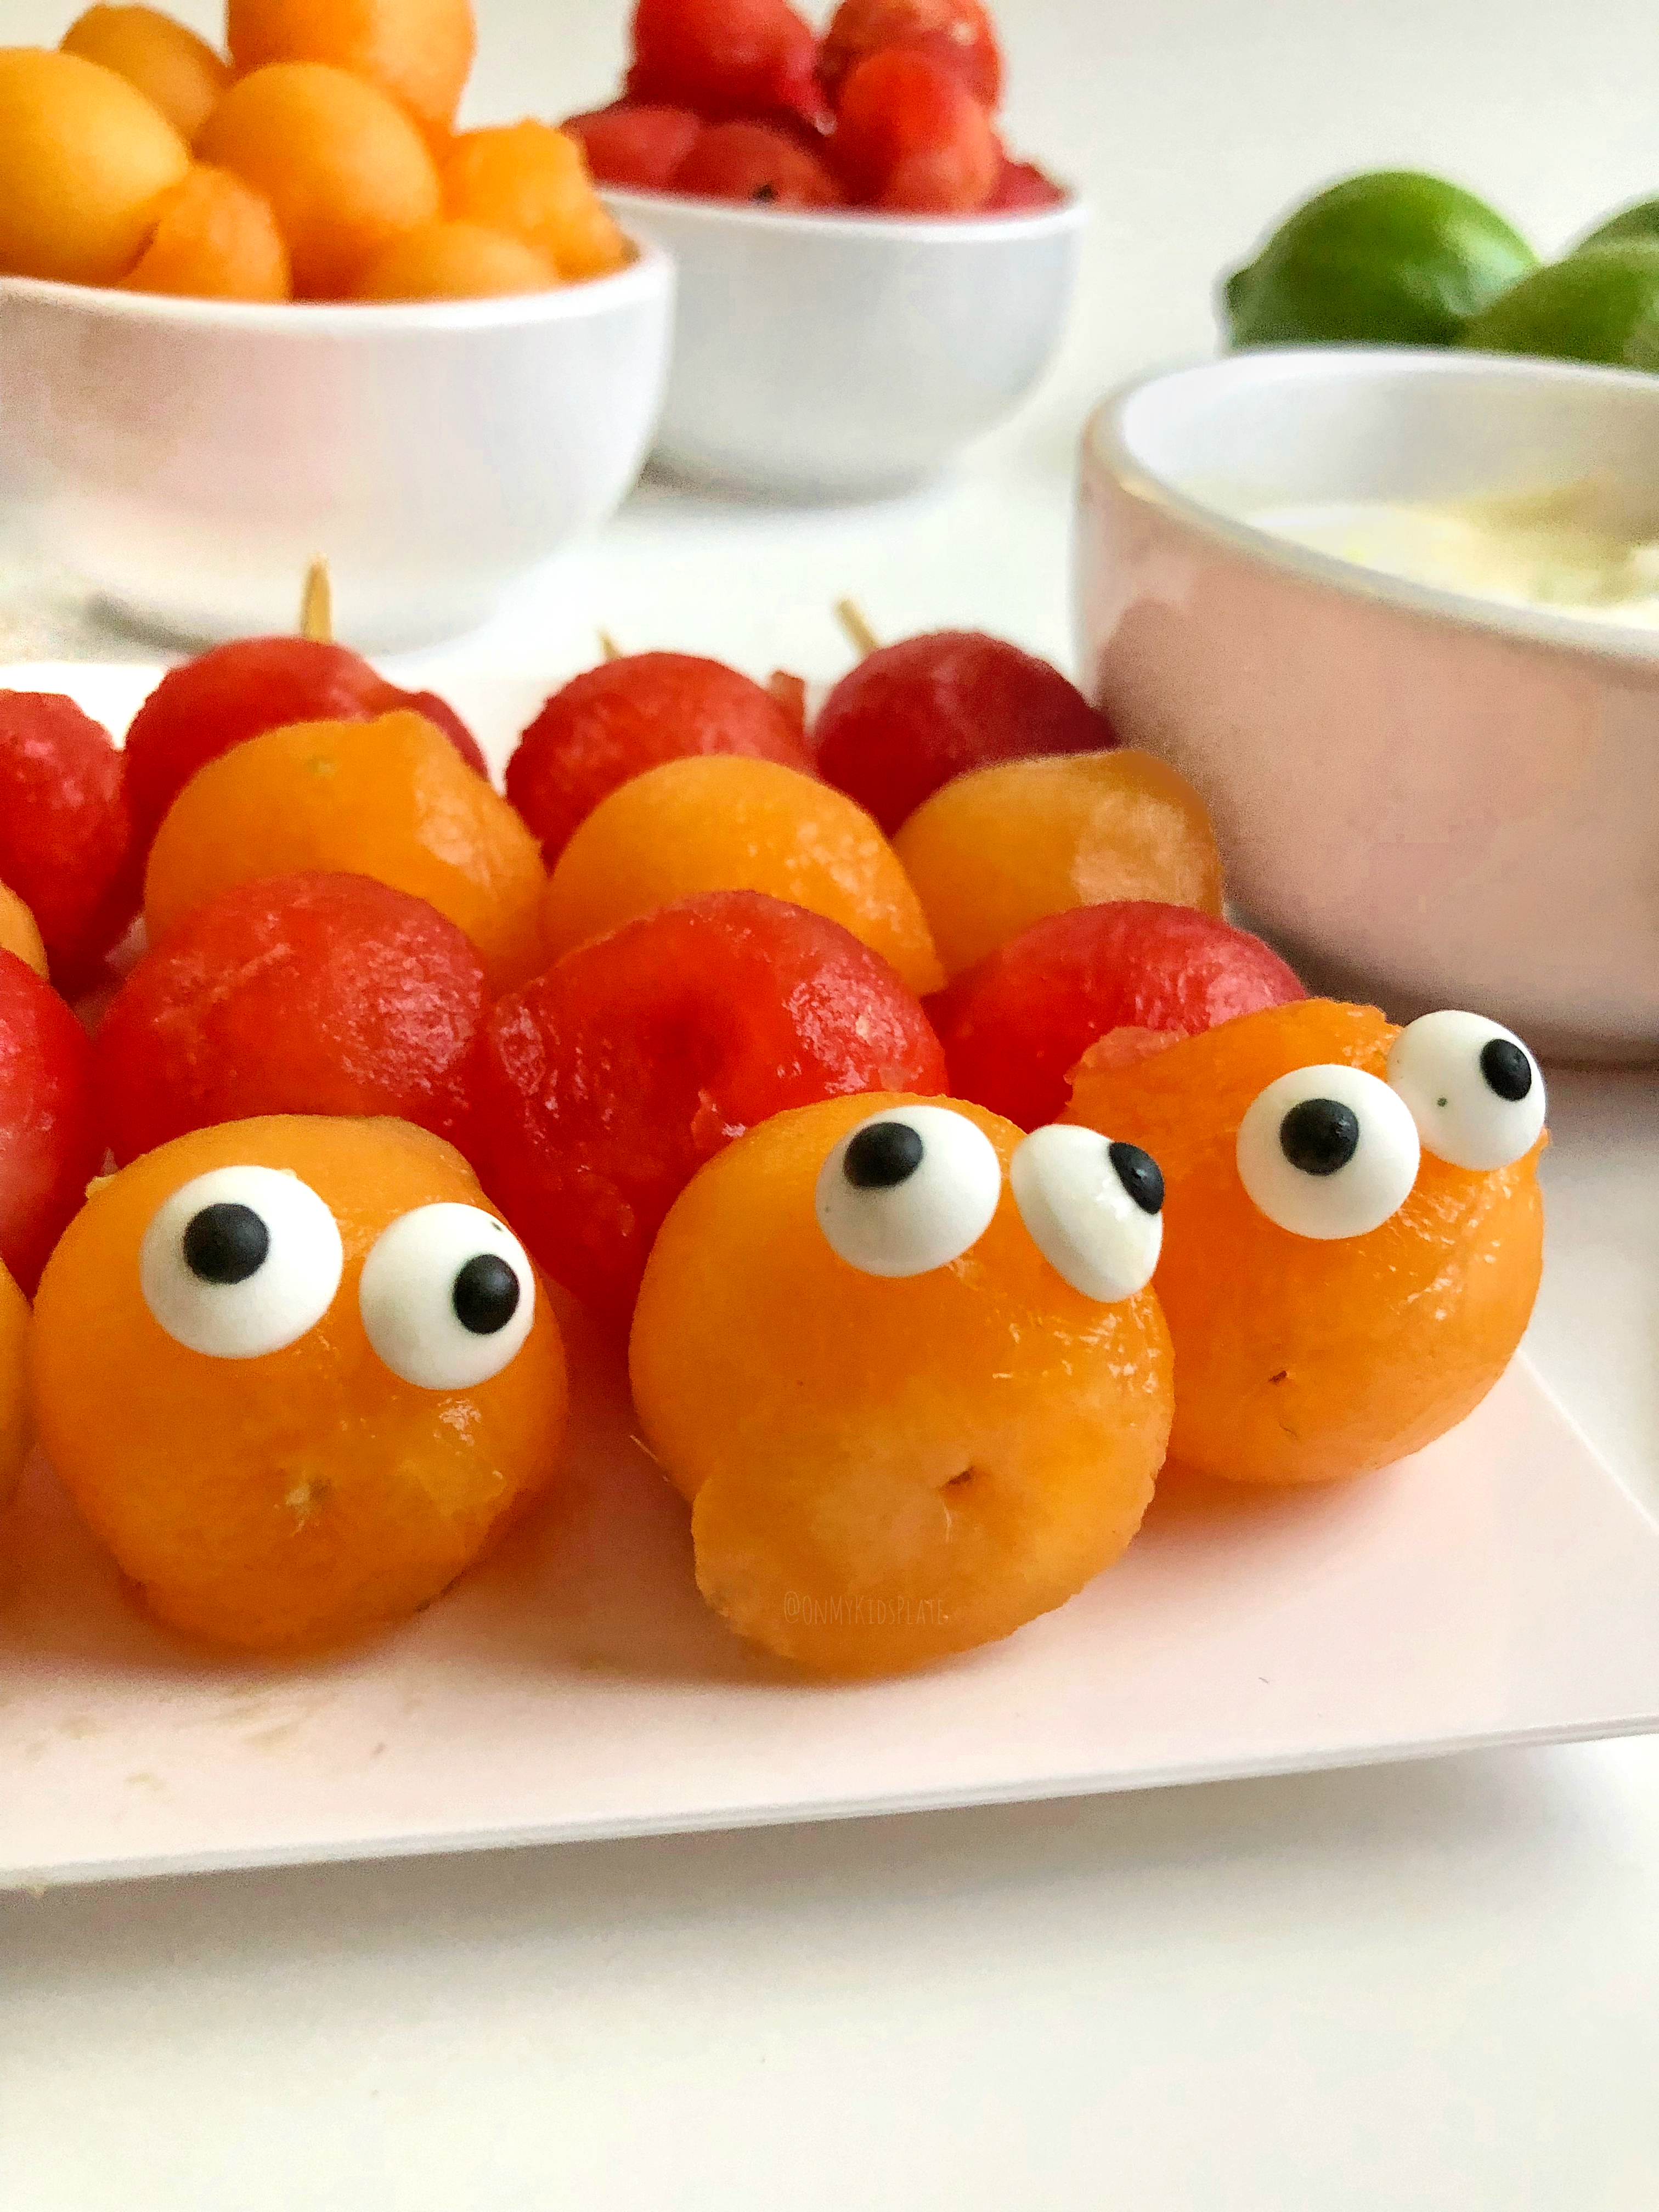 Cute pre-made Caterpillar Fruit Kebabs, ready for dipping